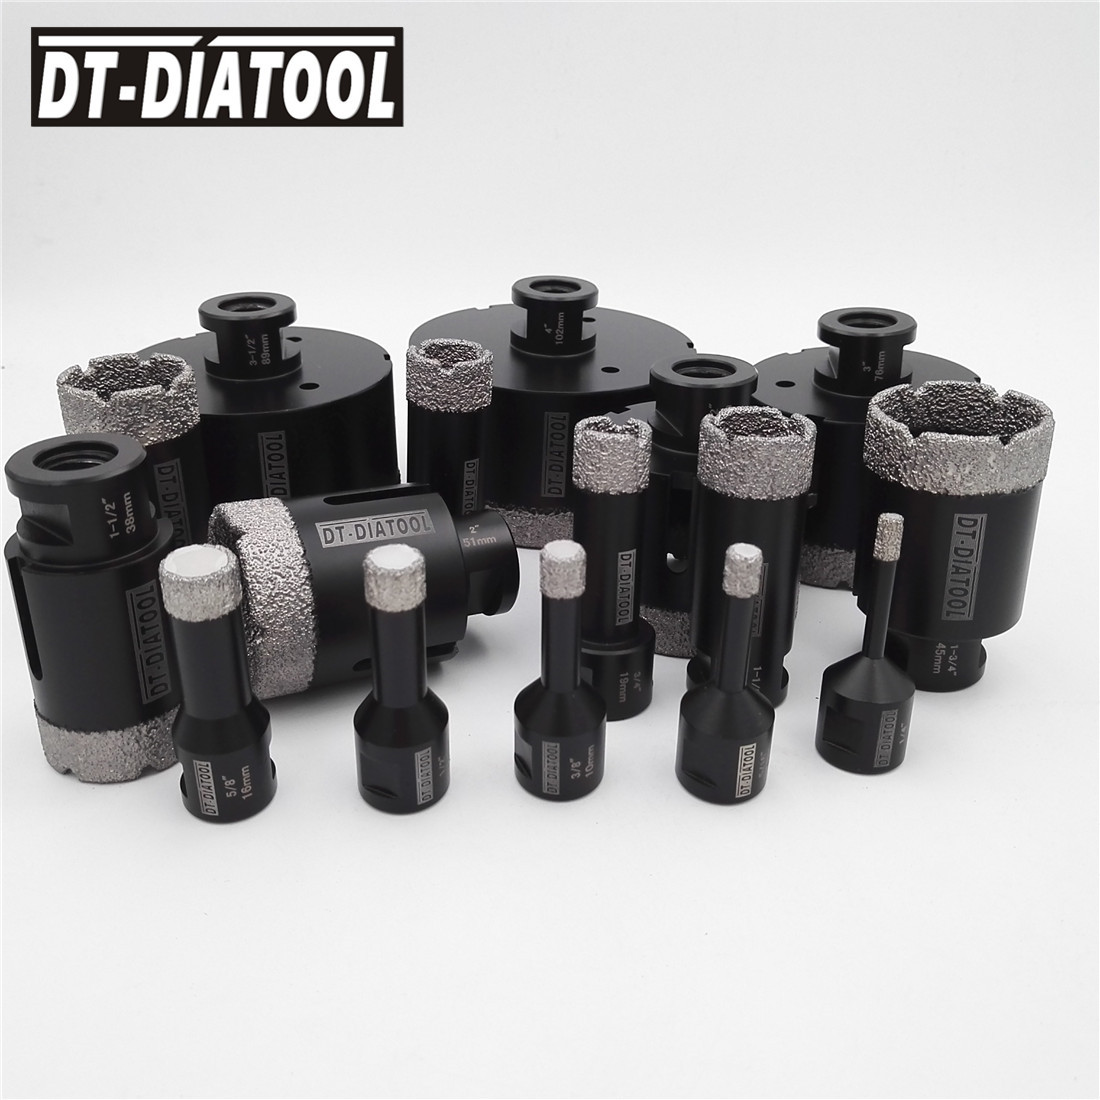 DT-DIATOOL 1pc Vacuum Brazed Diamond Drilling Bits Hole Saw Dry M14 Or 5/8-11 Thread Drill Core Bits For Ceramic Tile  Porcelain